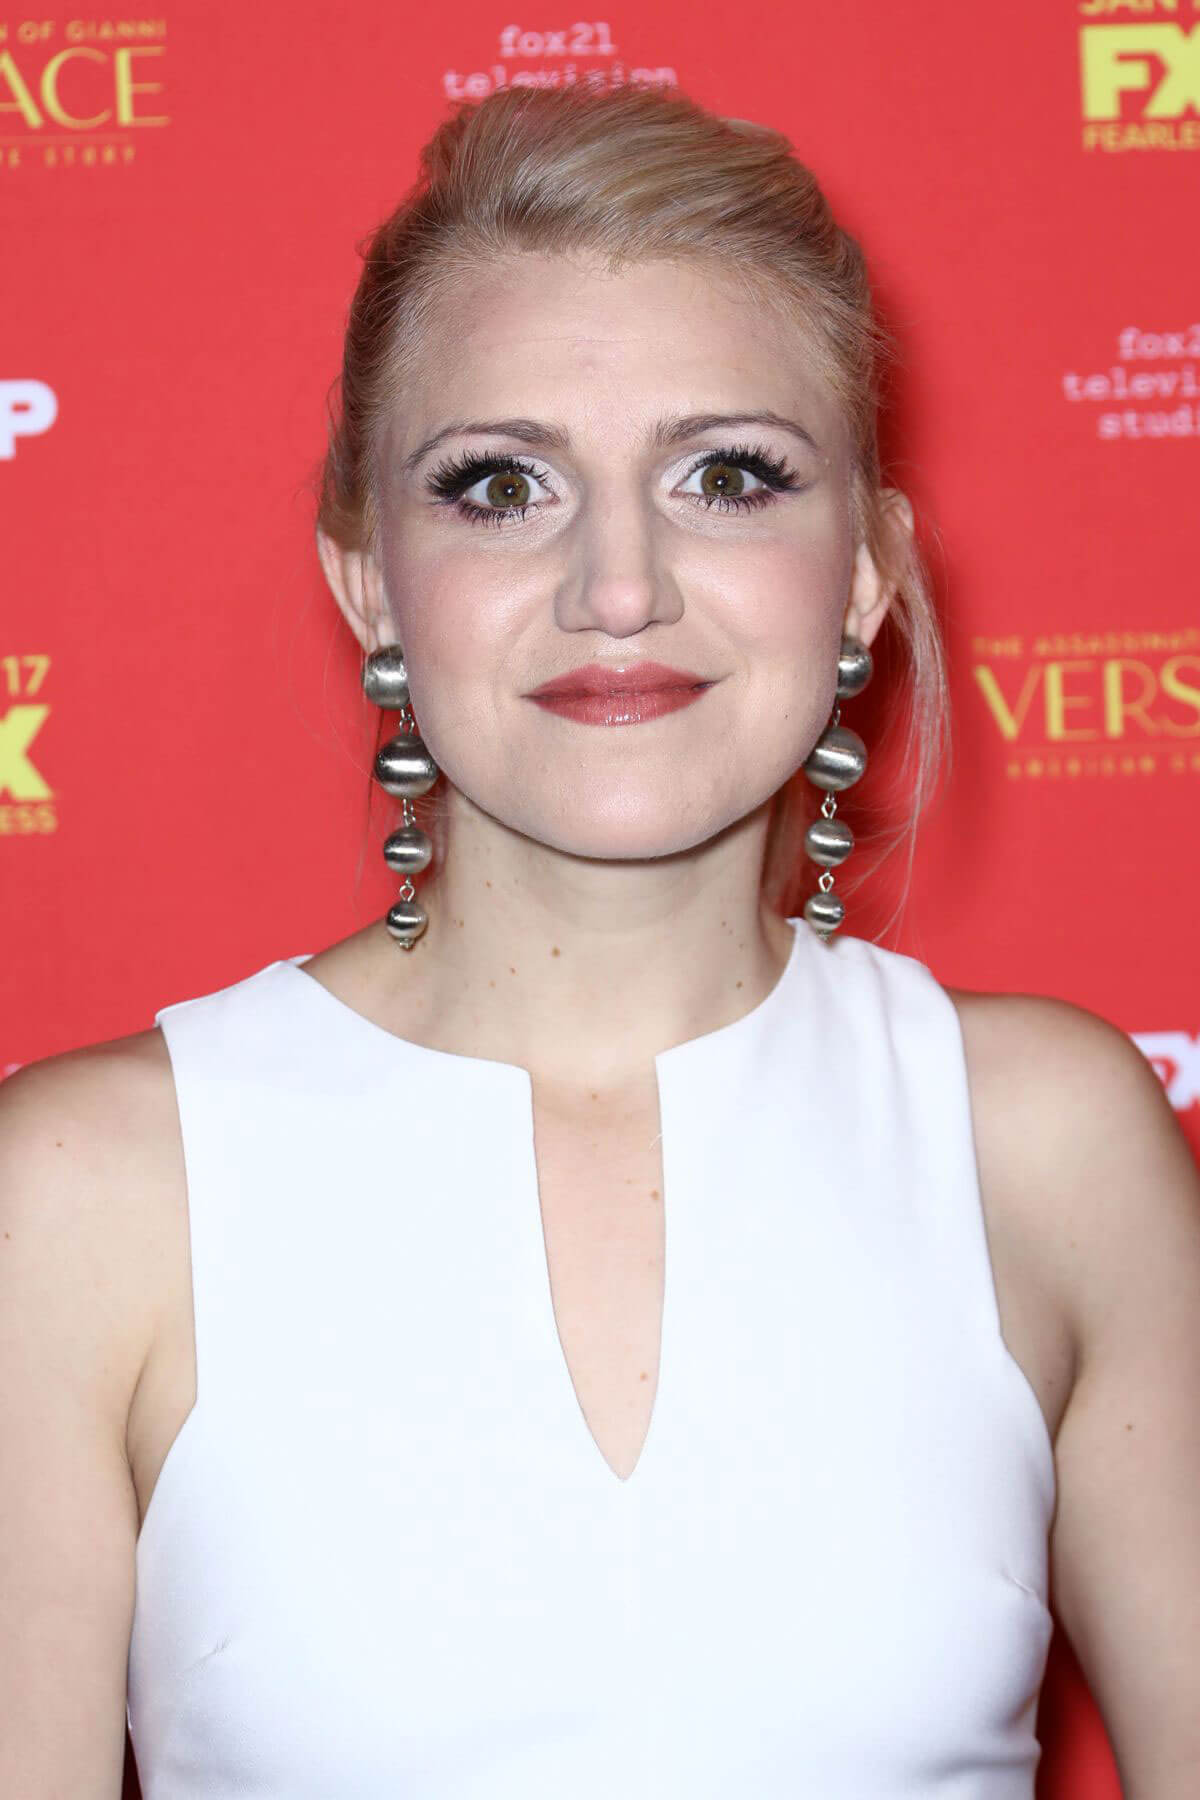 Cleavage Annaleigh Ashford nude (73 foto and video), Tits, Leaked, Boobs, braless 2020